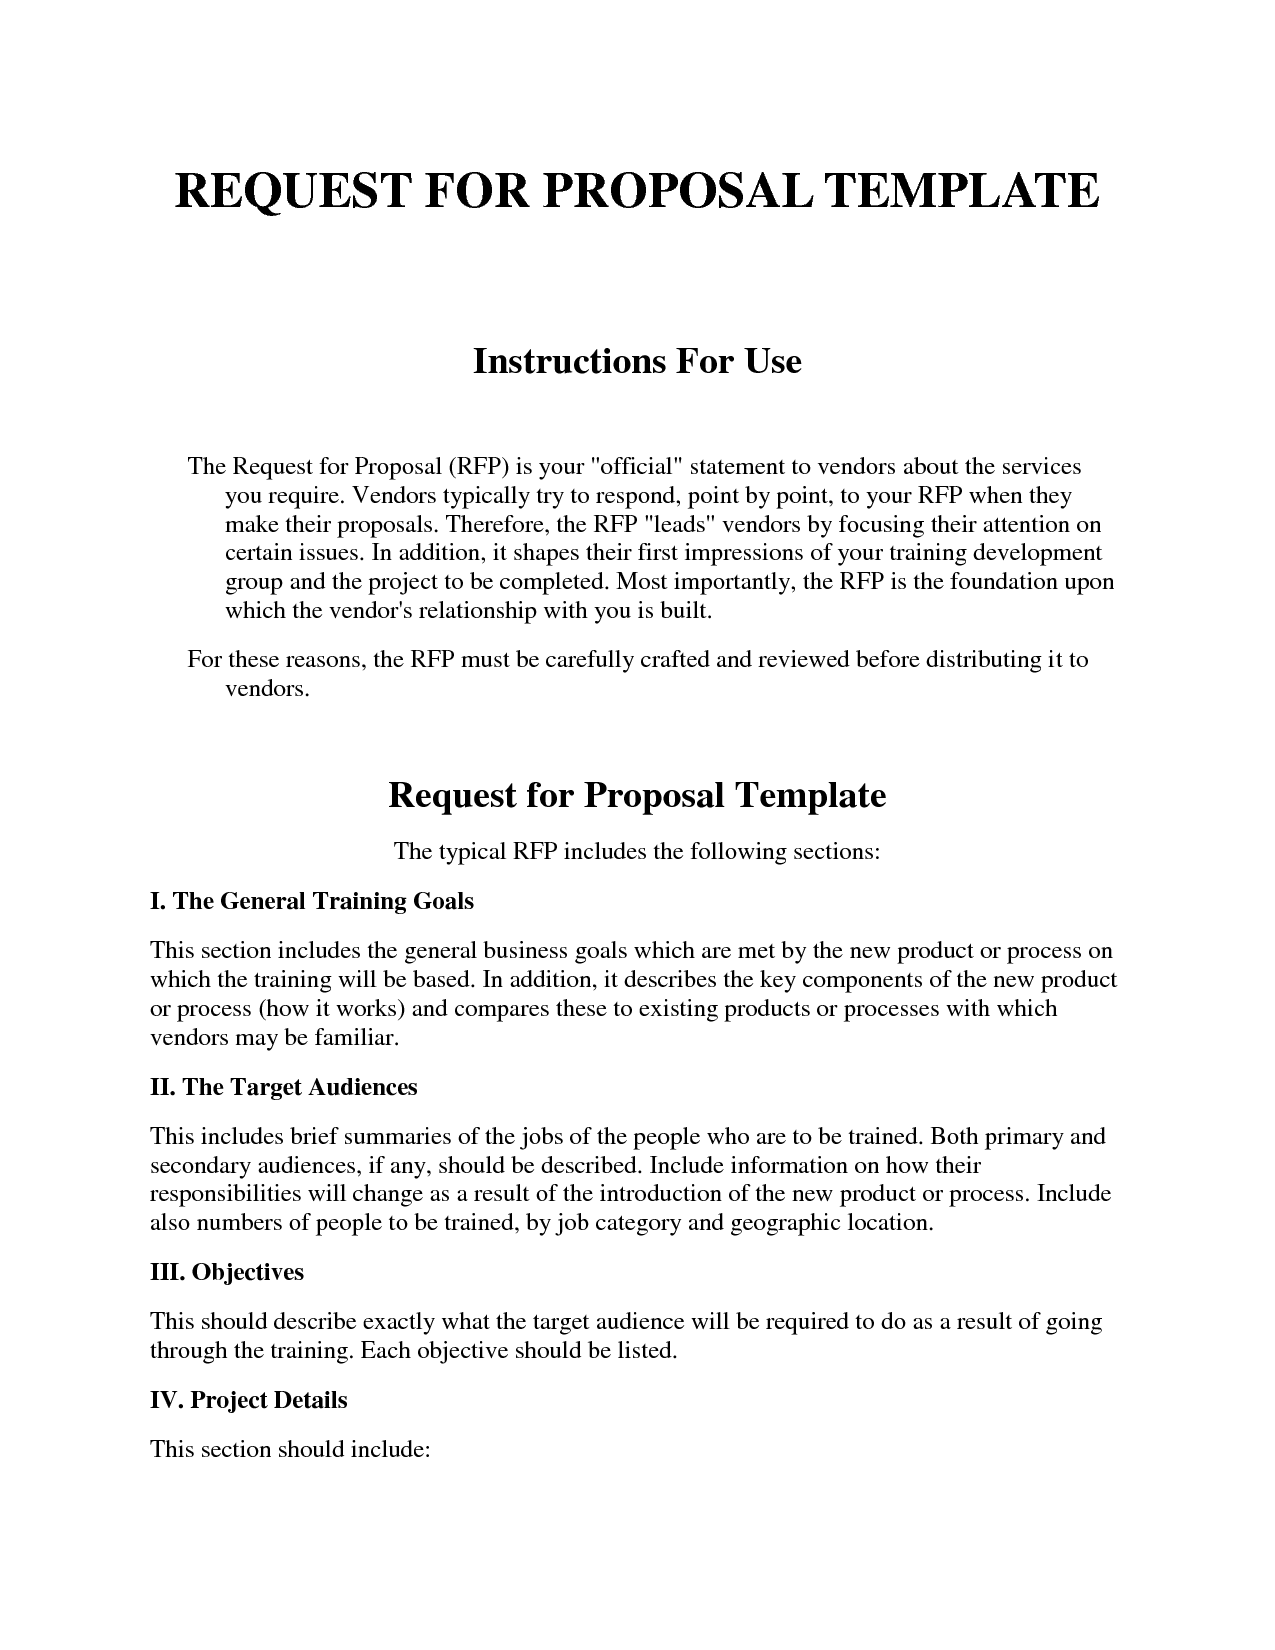 Request For Proposal Template Word Document